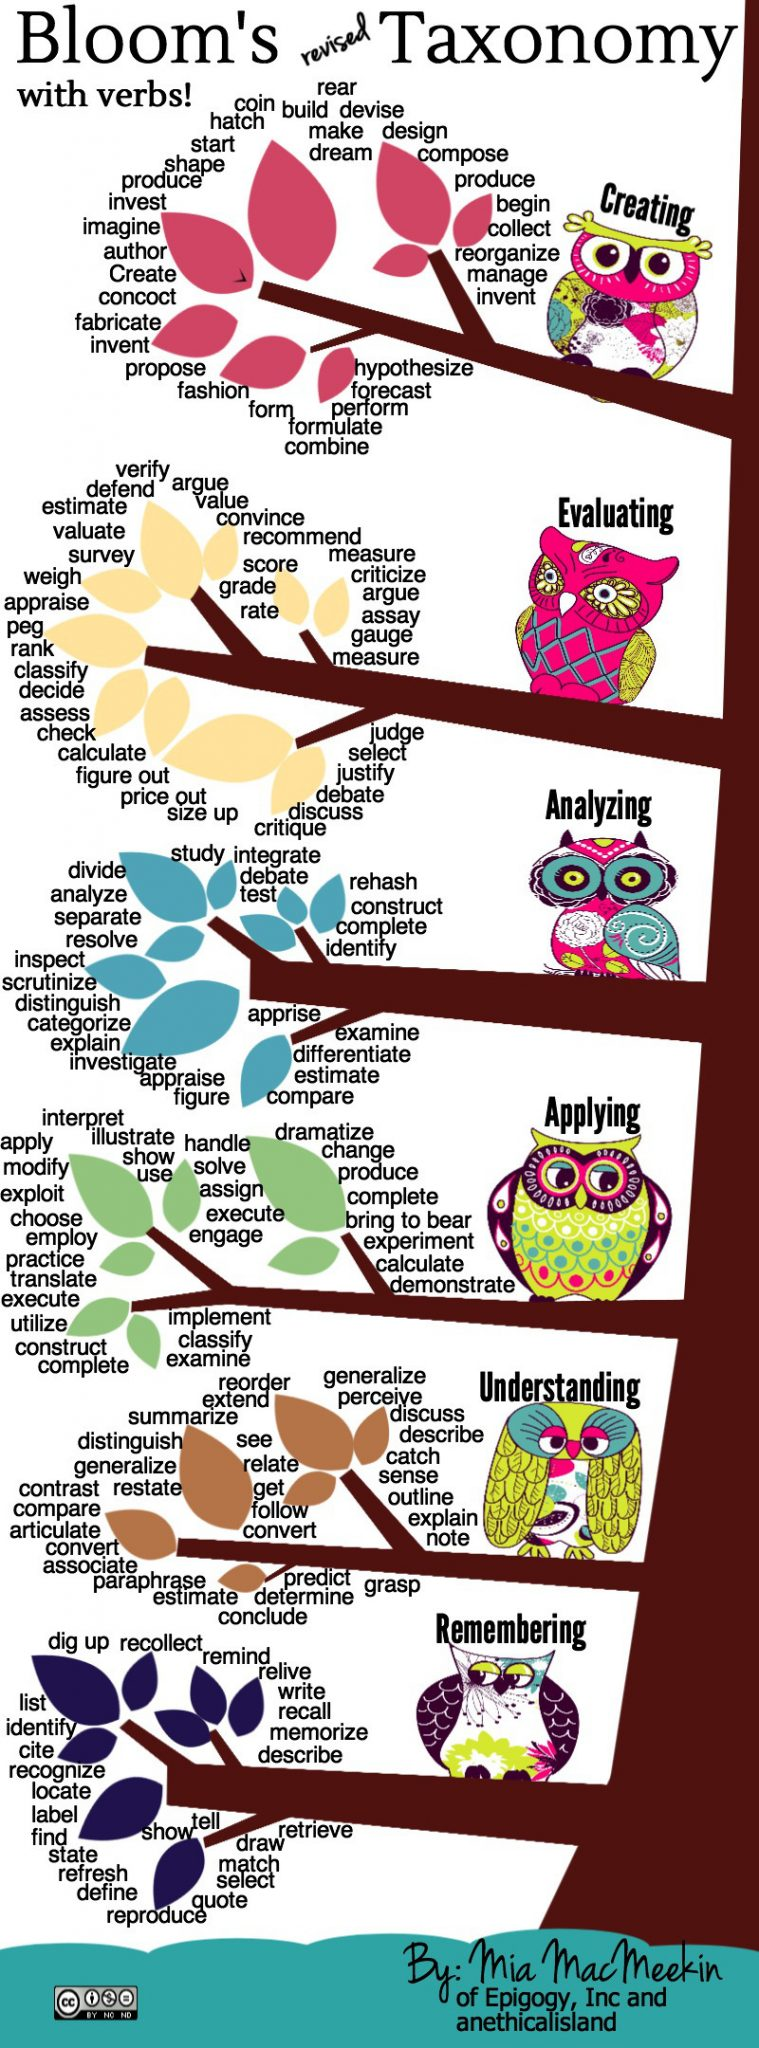 blooms-revised-taxonomy-tree